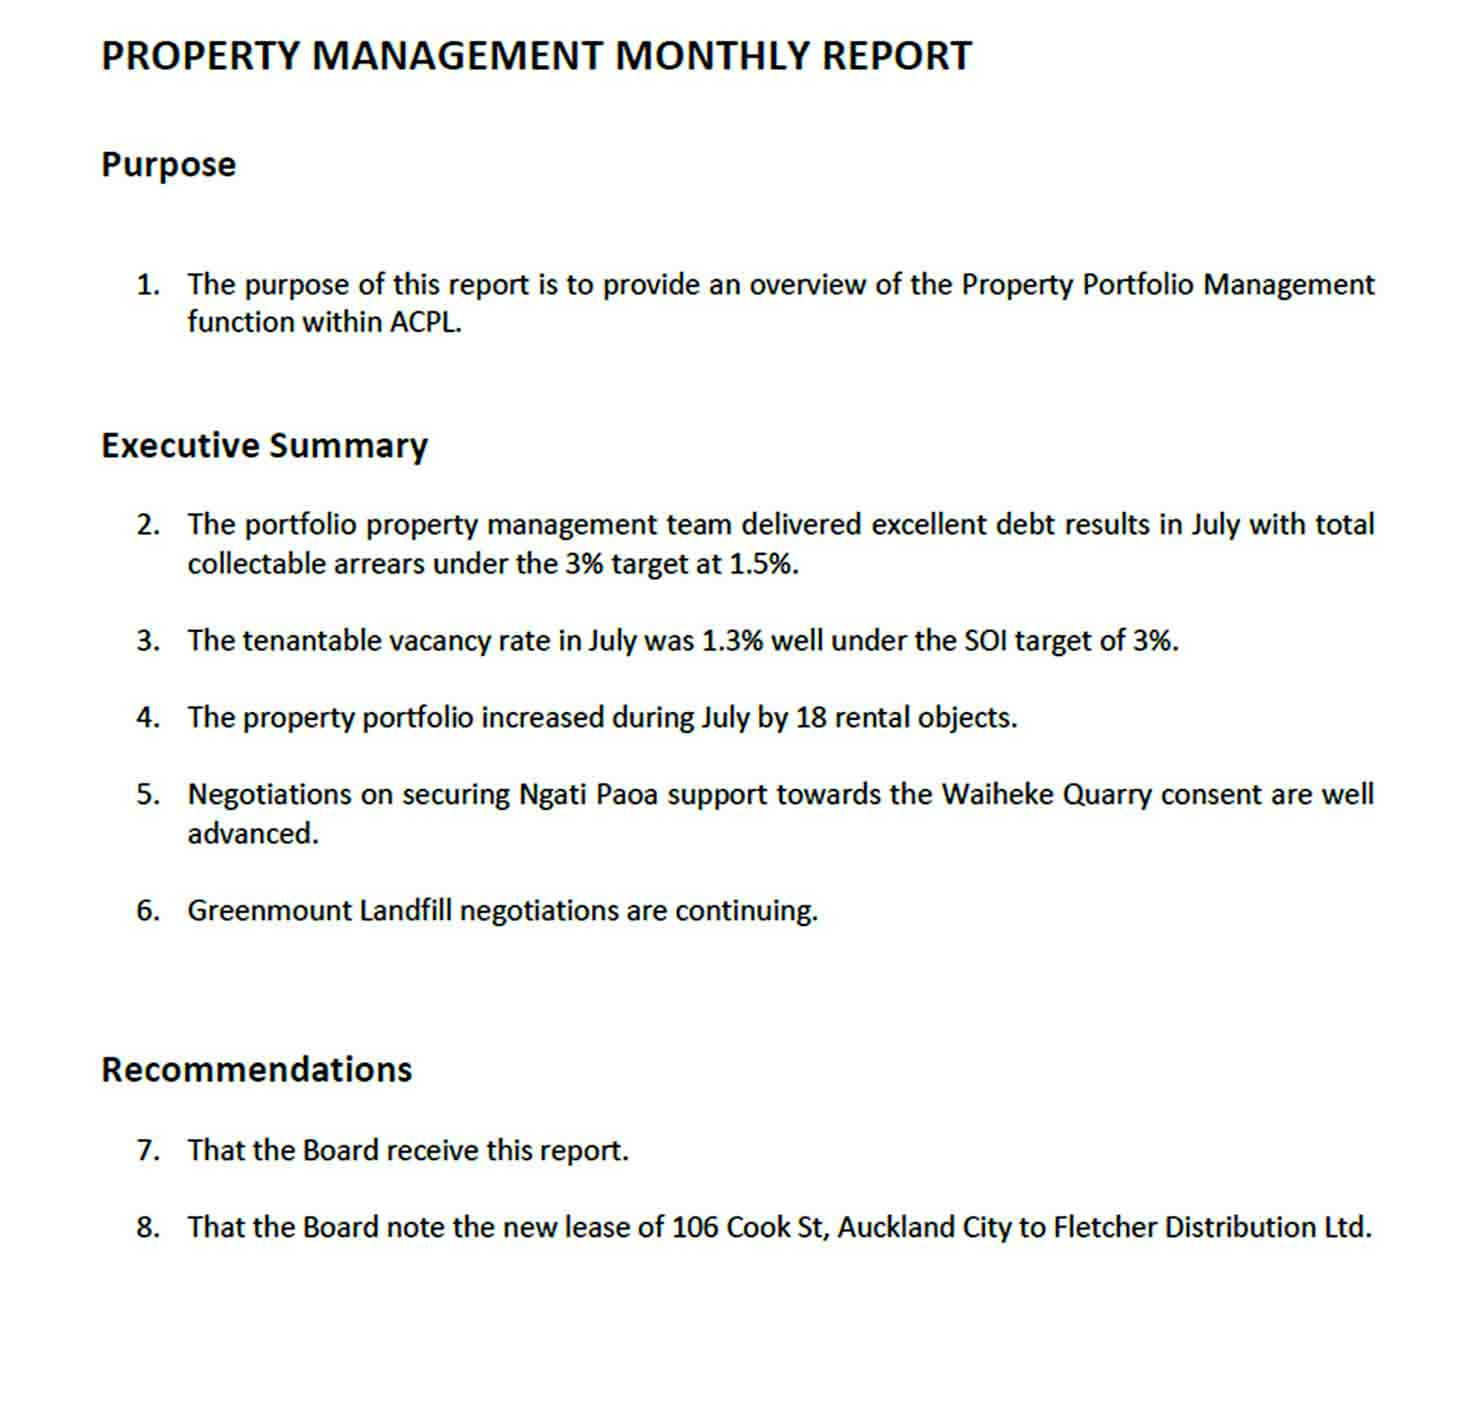 Monthly Property Management Report sample